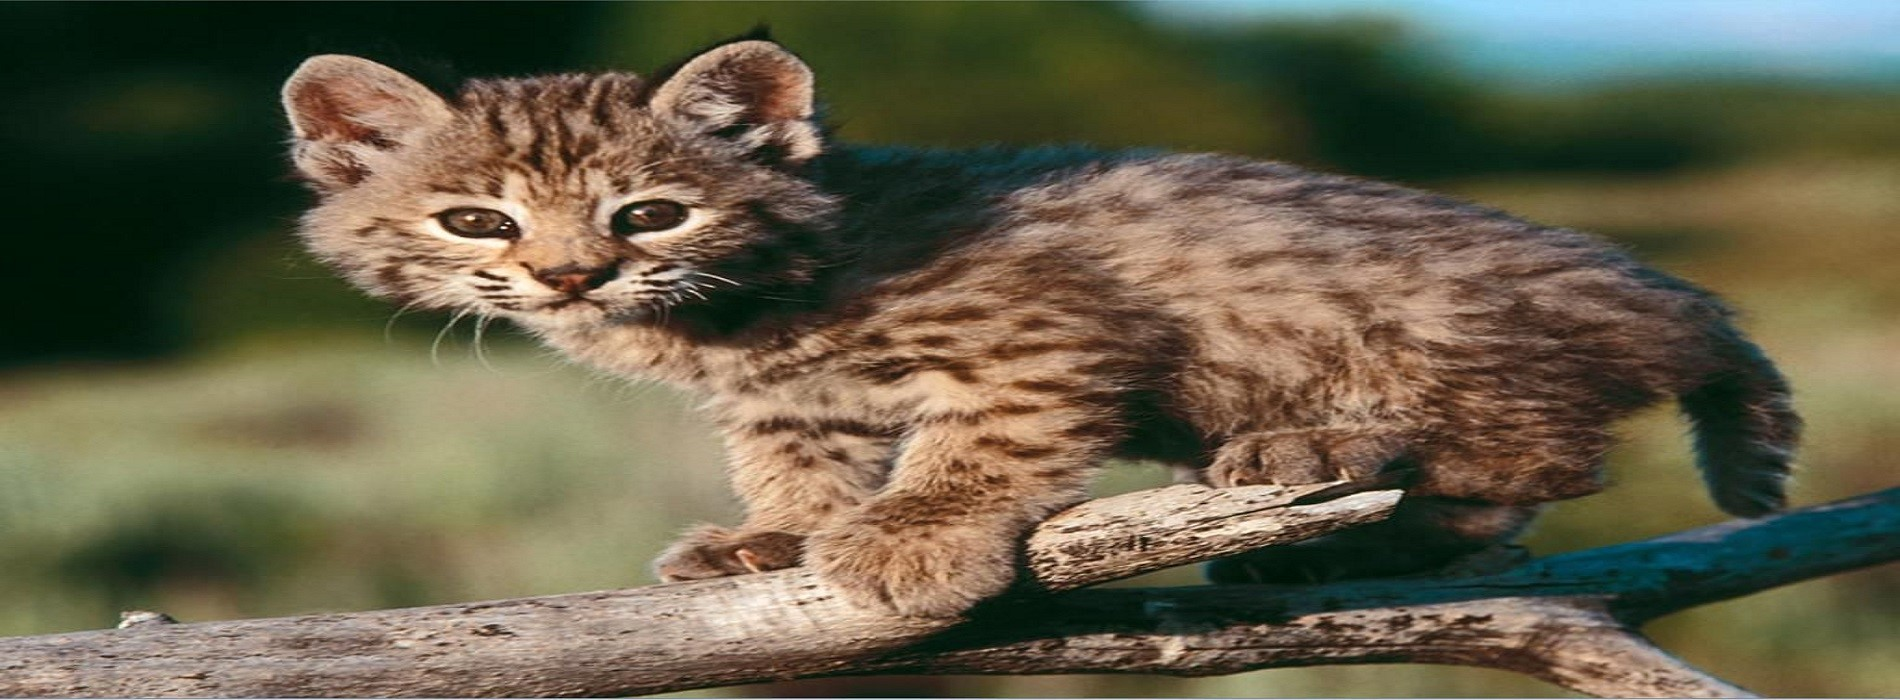 Wildcat Kitten